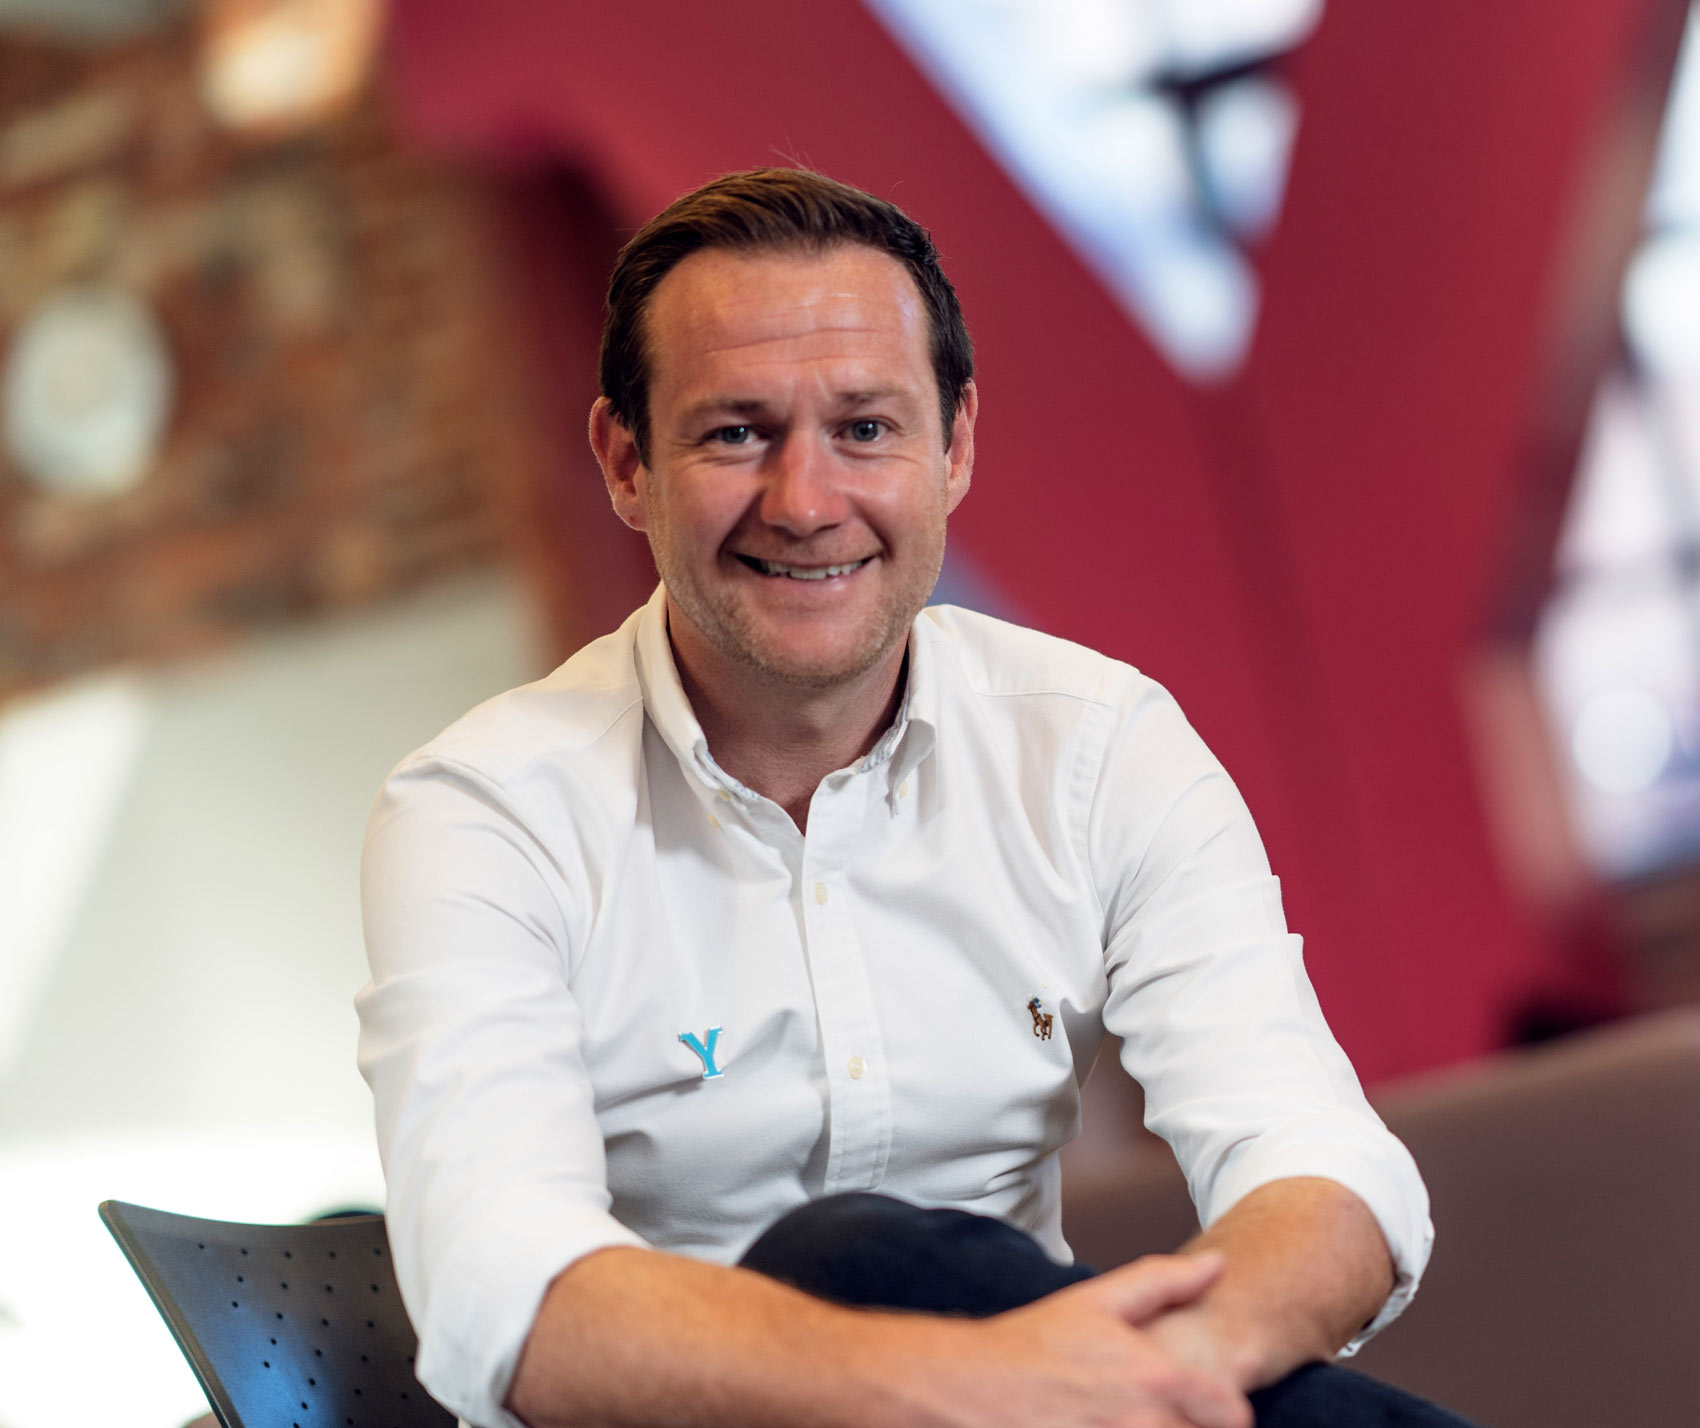 Welcome to Yorkshire Chief Executive James Mason